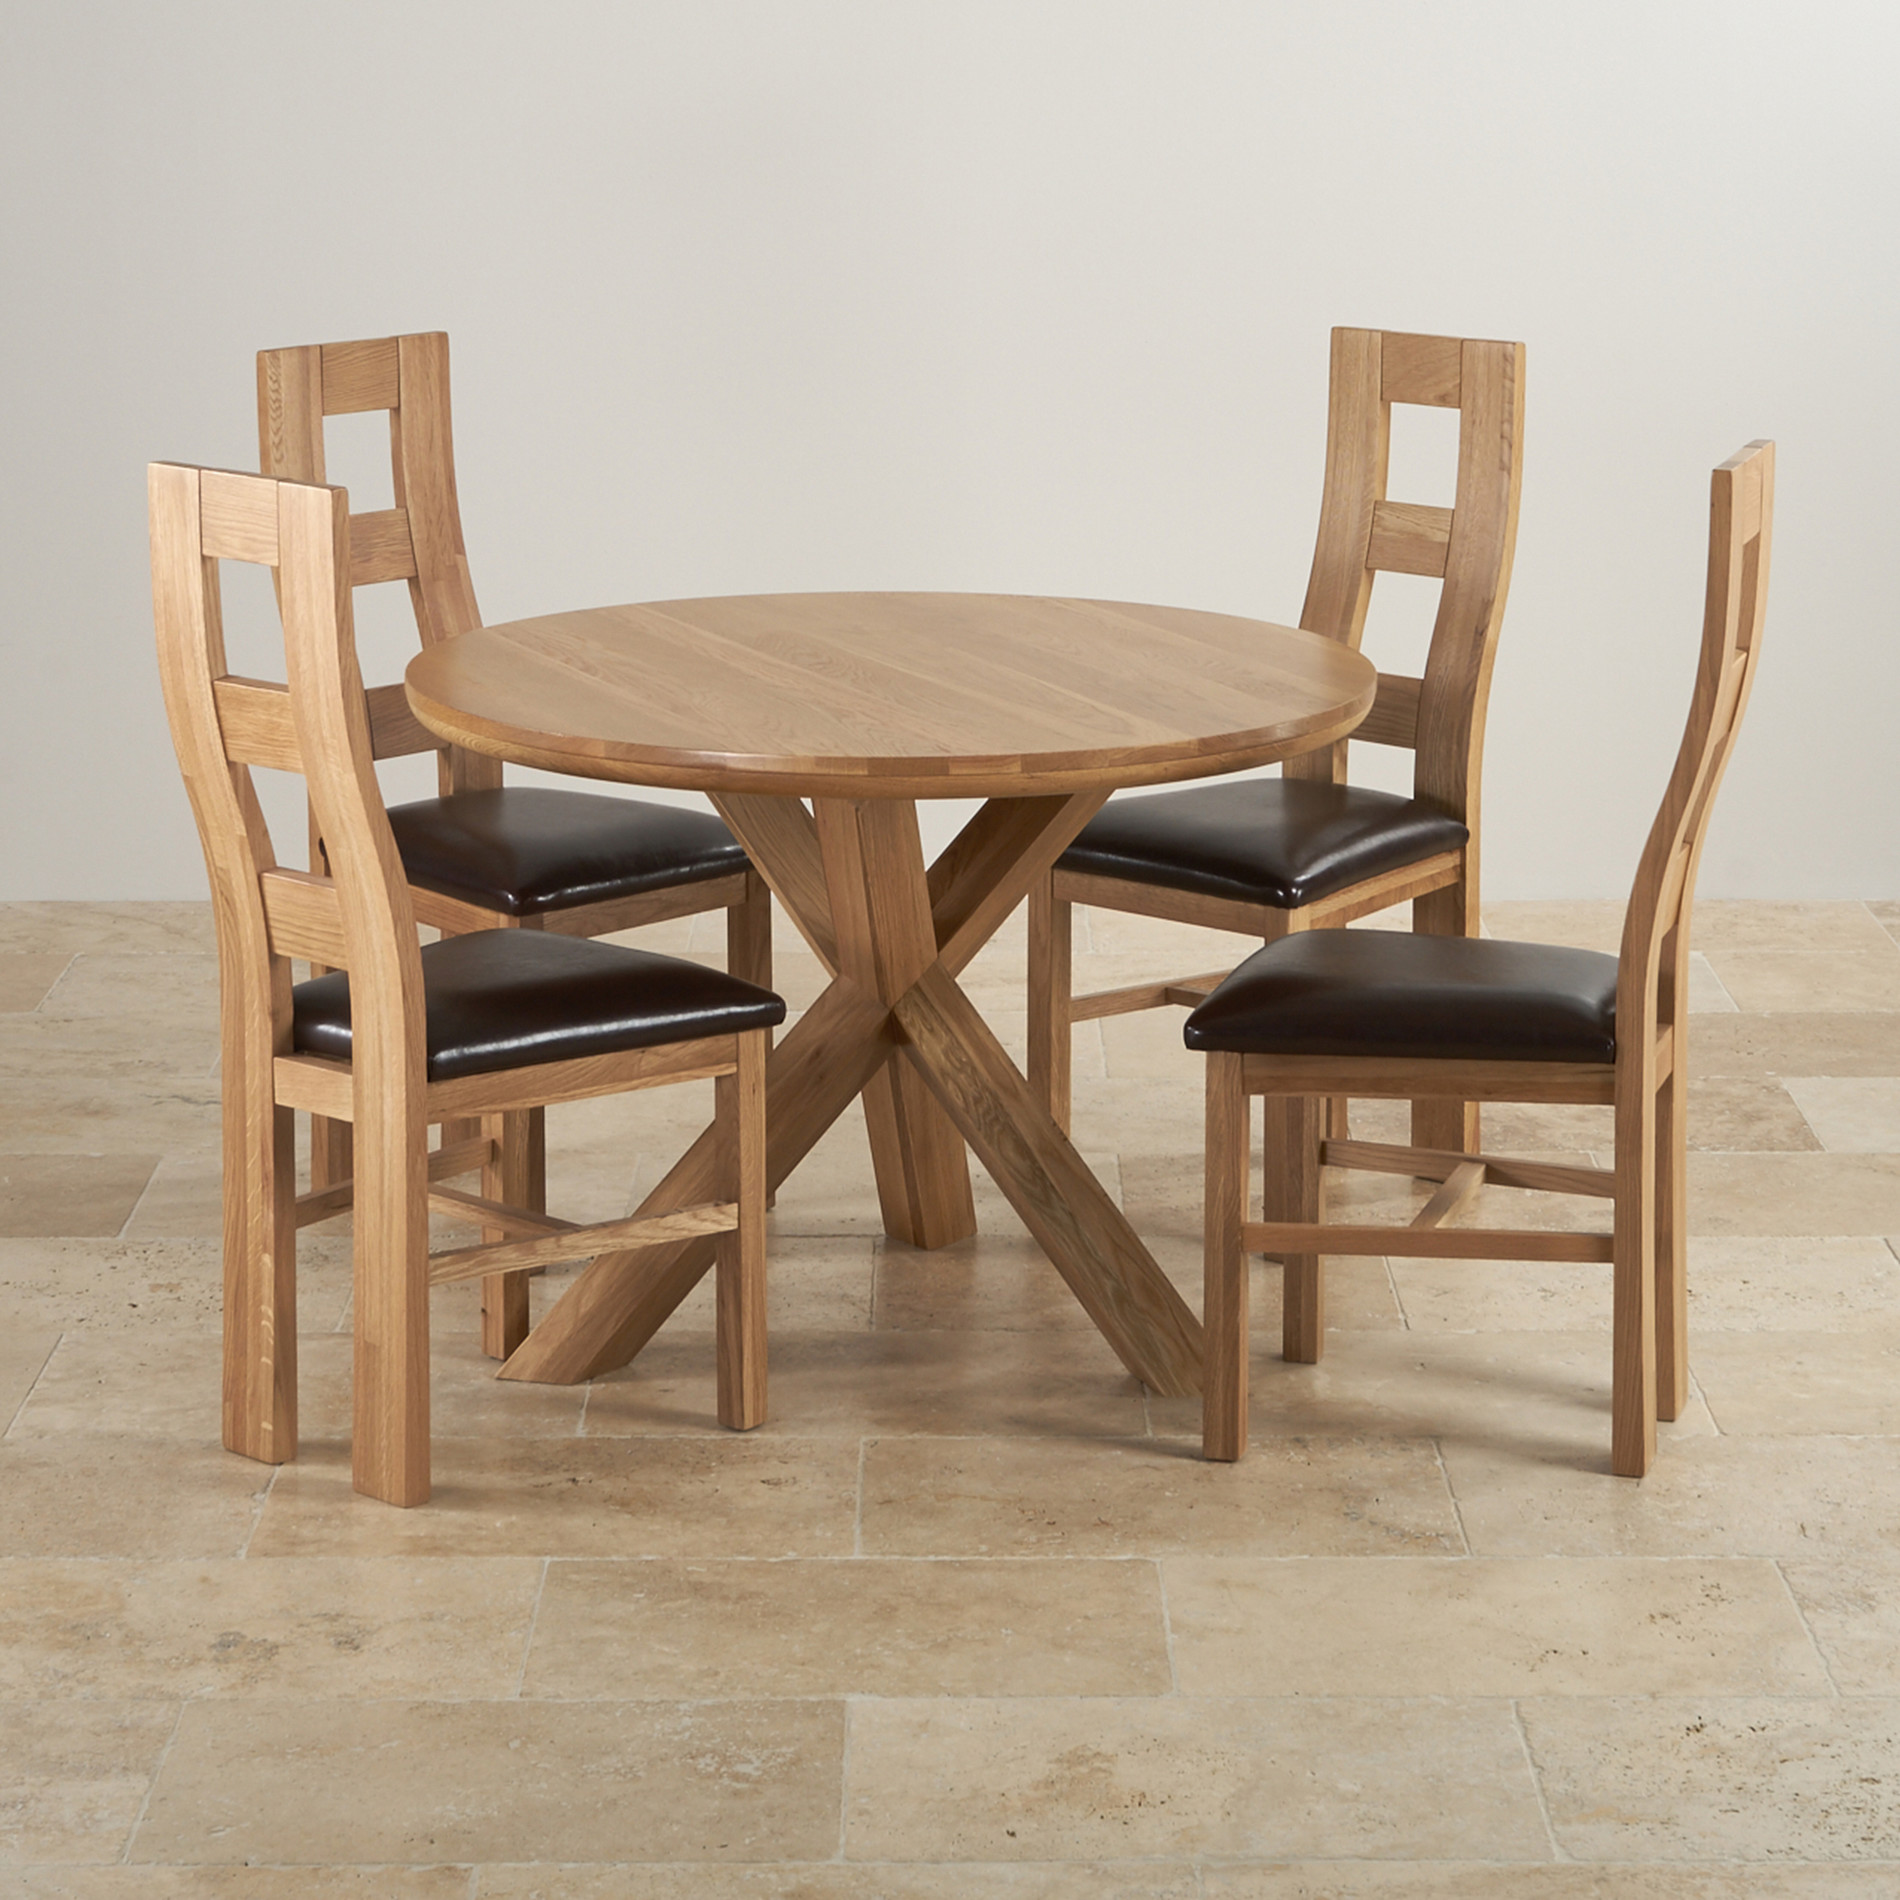 natural oak dining set 3ft 7 table 4 wave back chairs. Black Bedroom Furniture Sets. Home Design Ideas